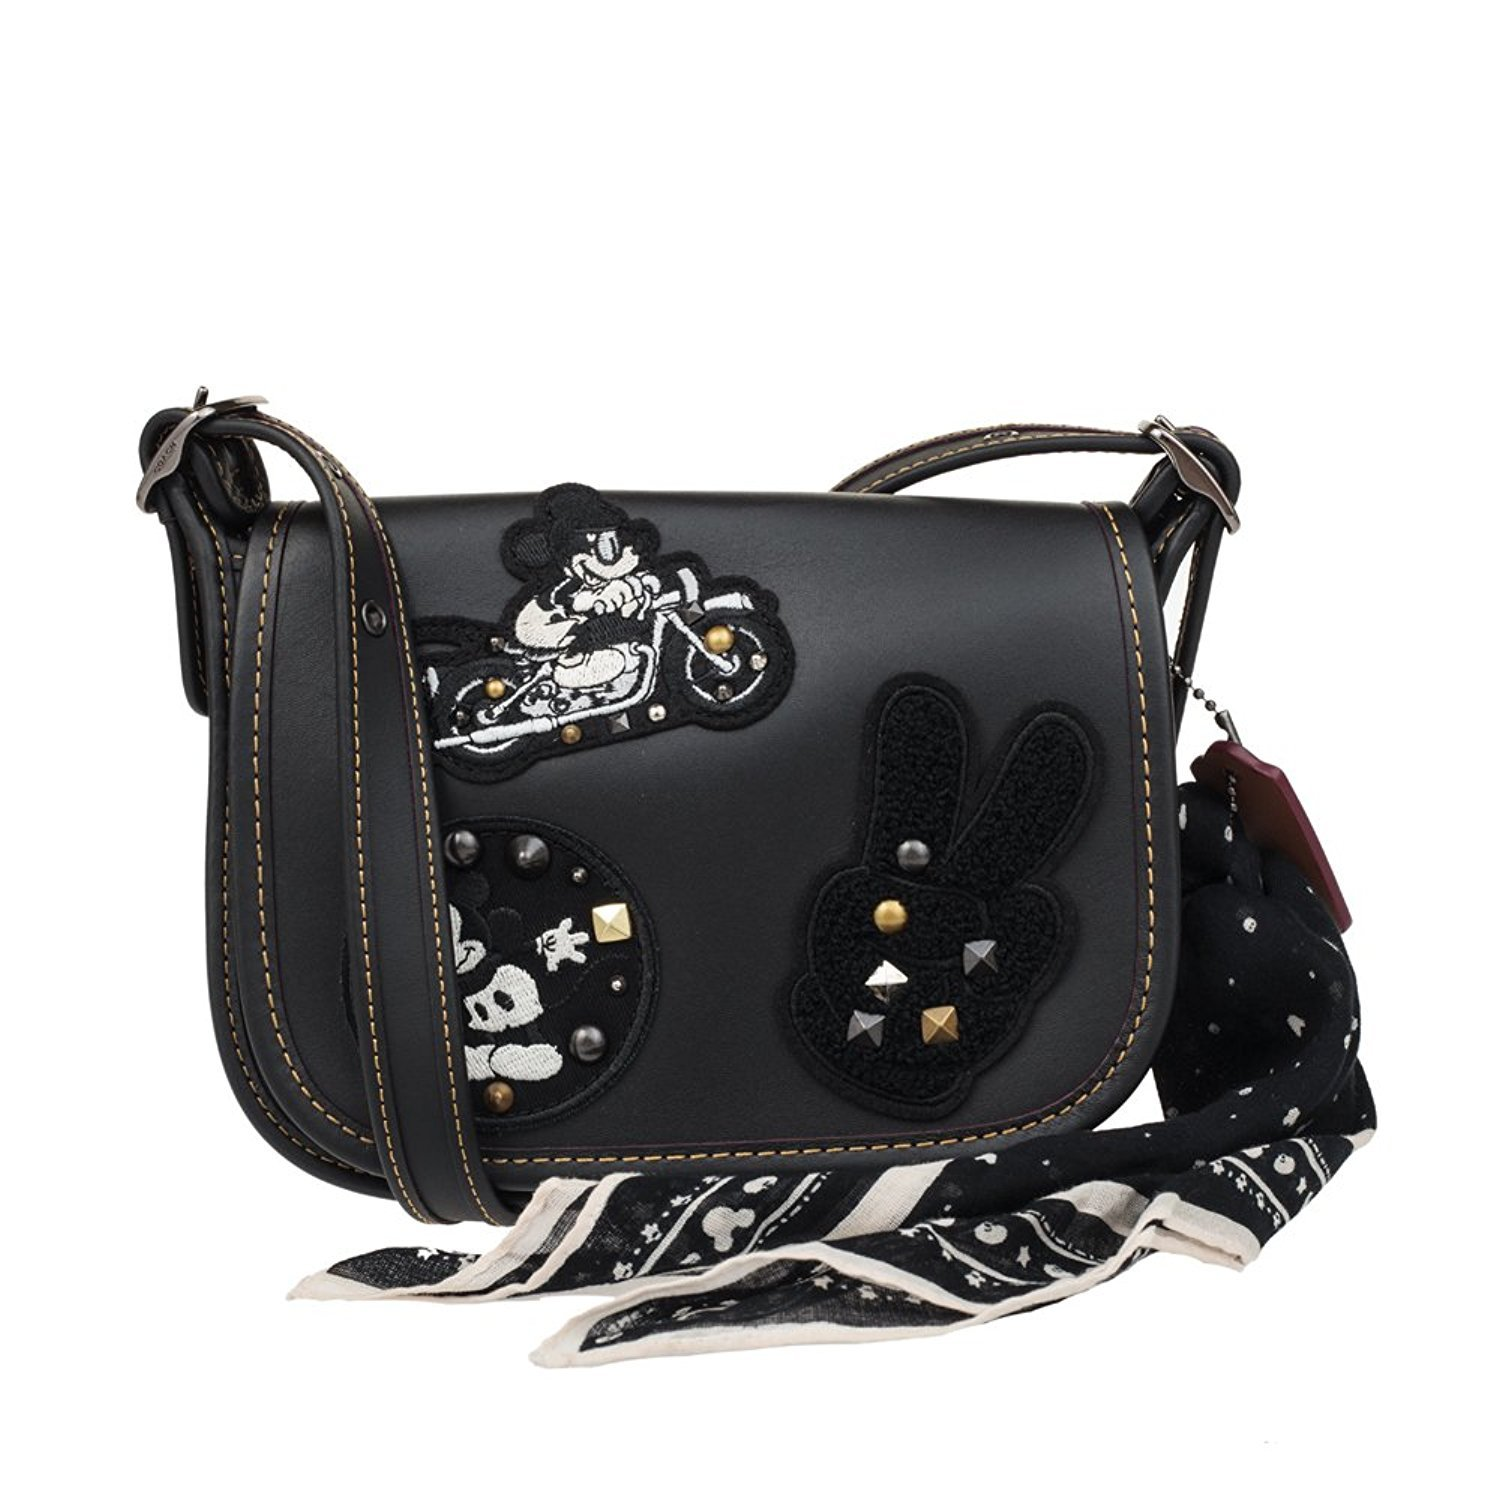 COACH MICKEY Patricia Saddle 18 in Glove Calf Leather with Mickey Patches Black